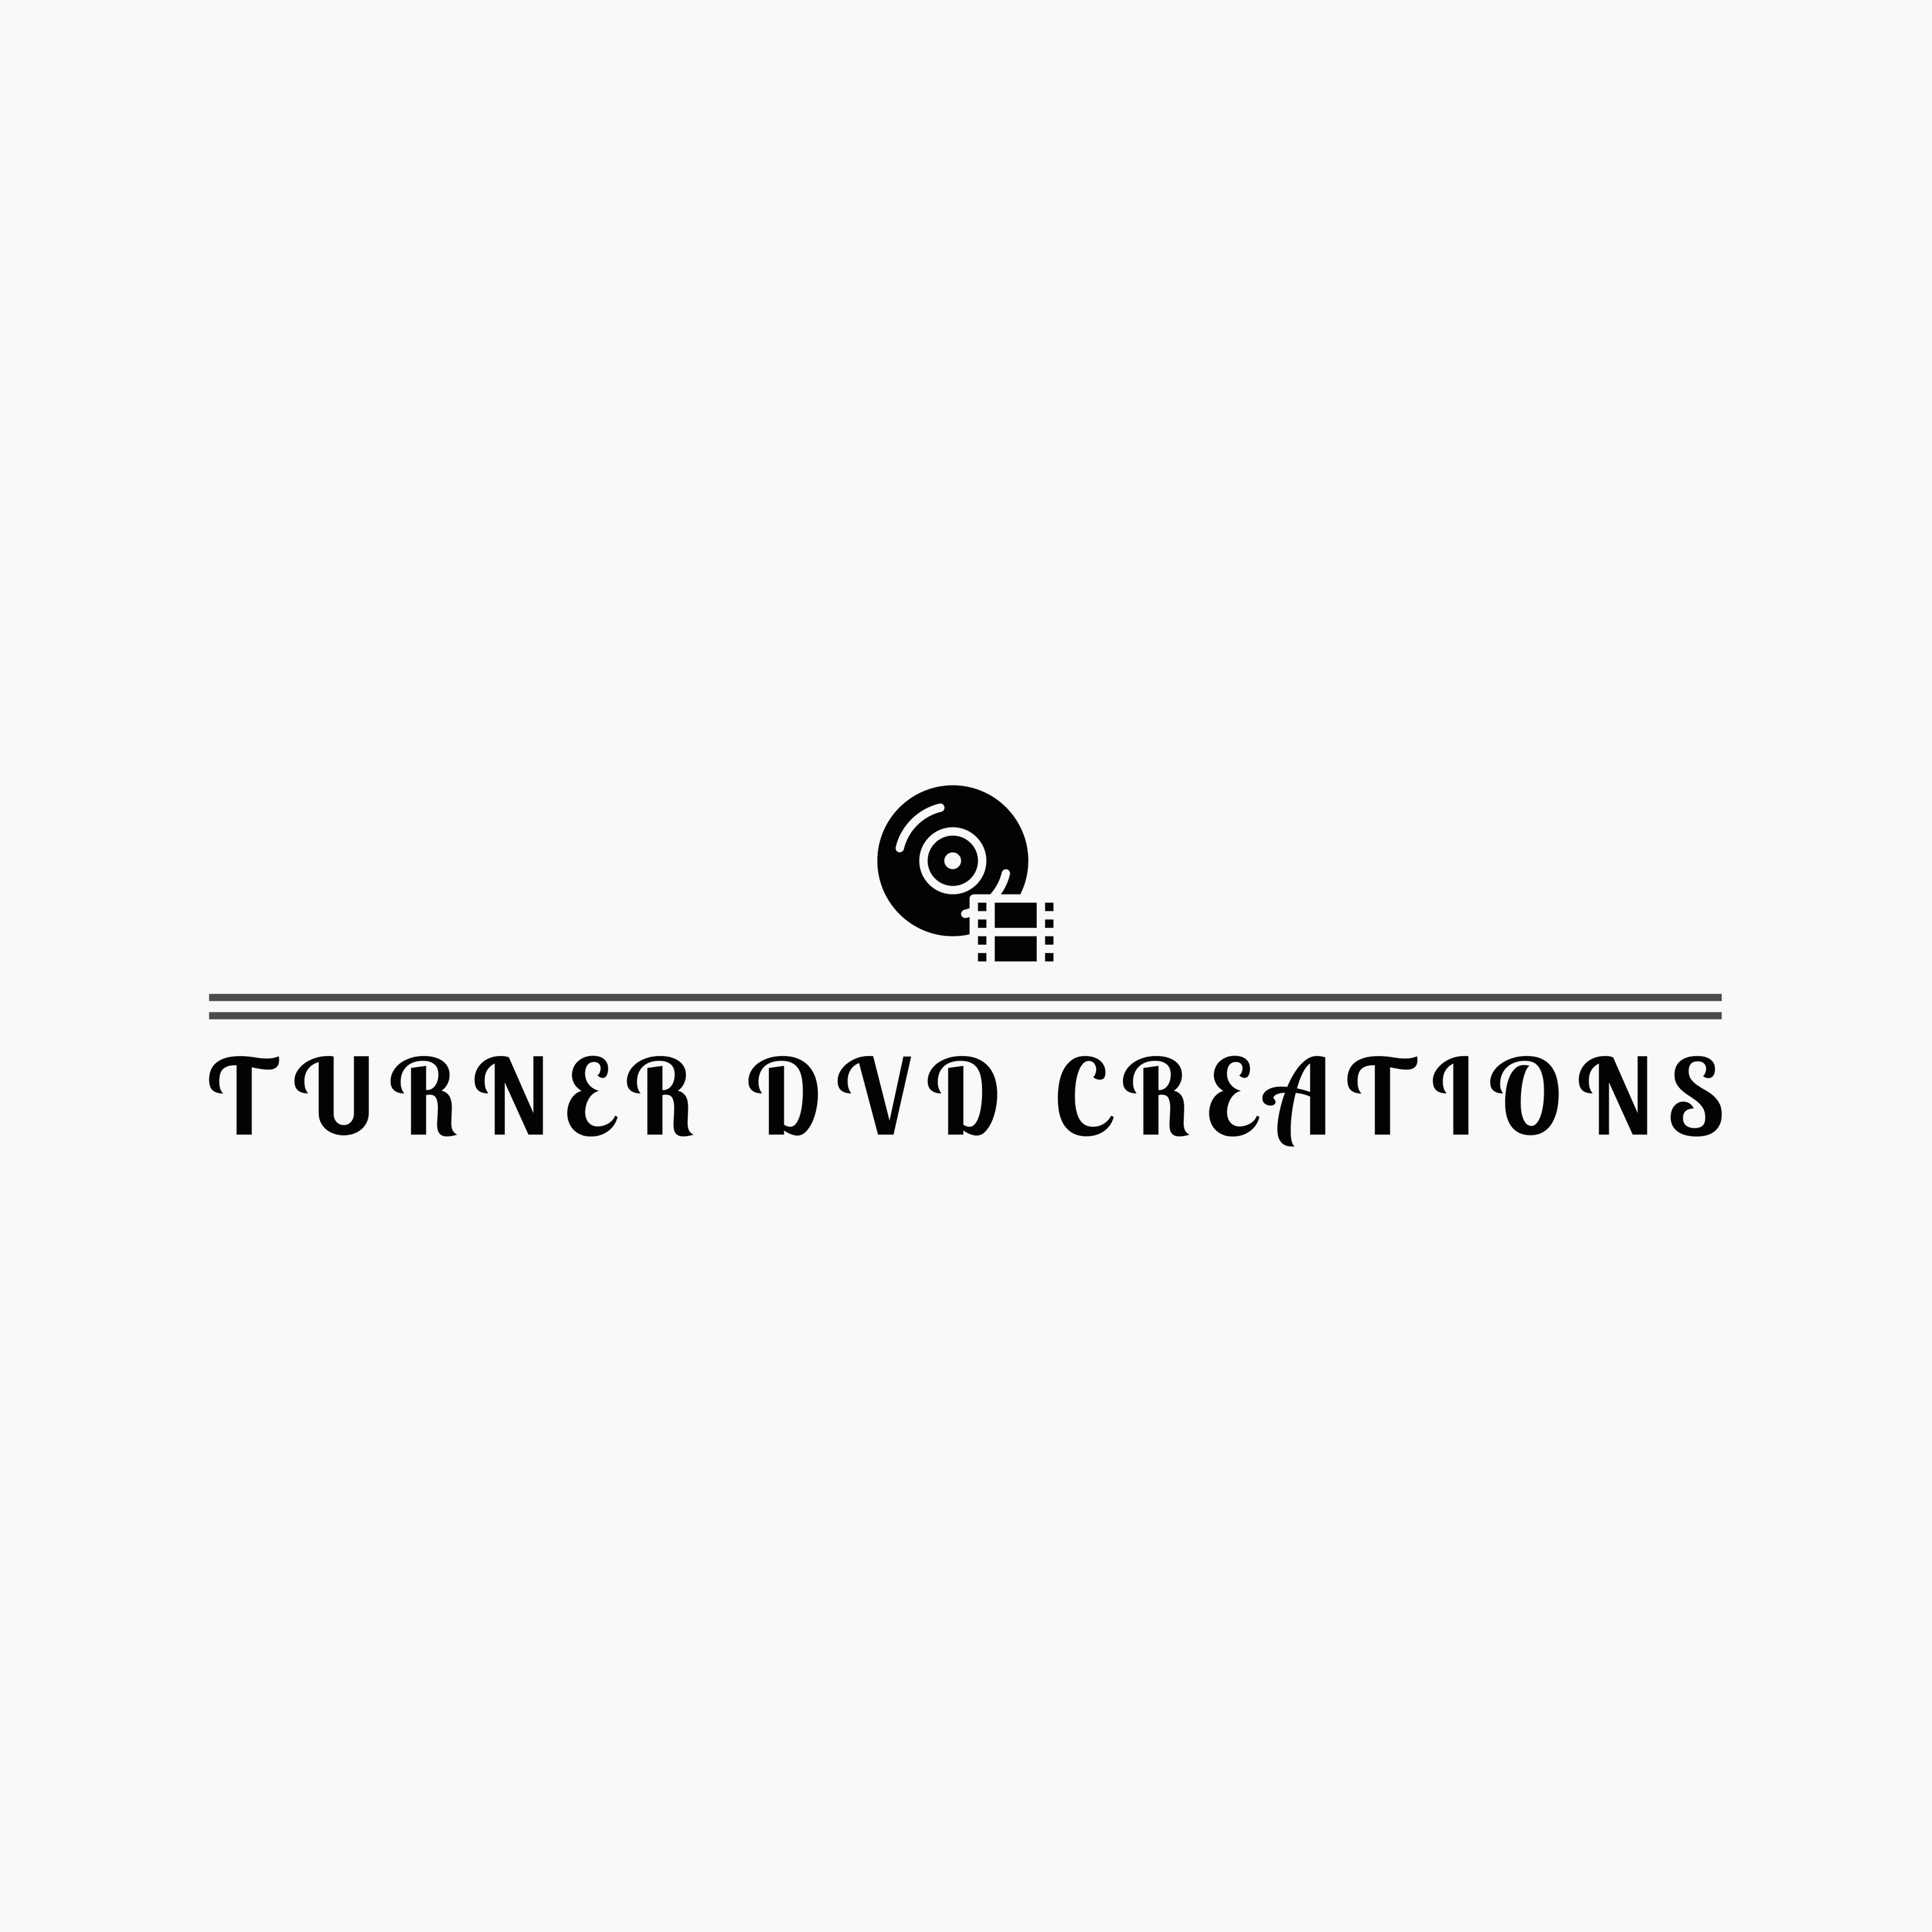 TURNER DVD CREATIONS